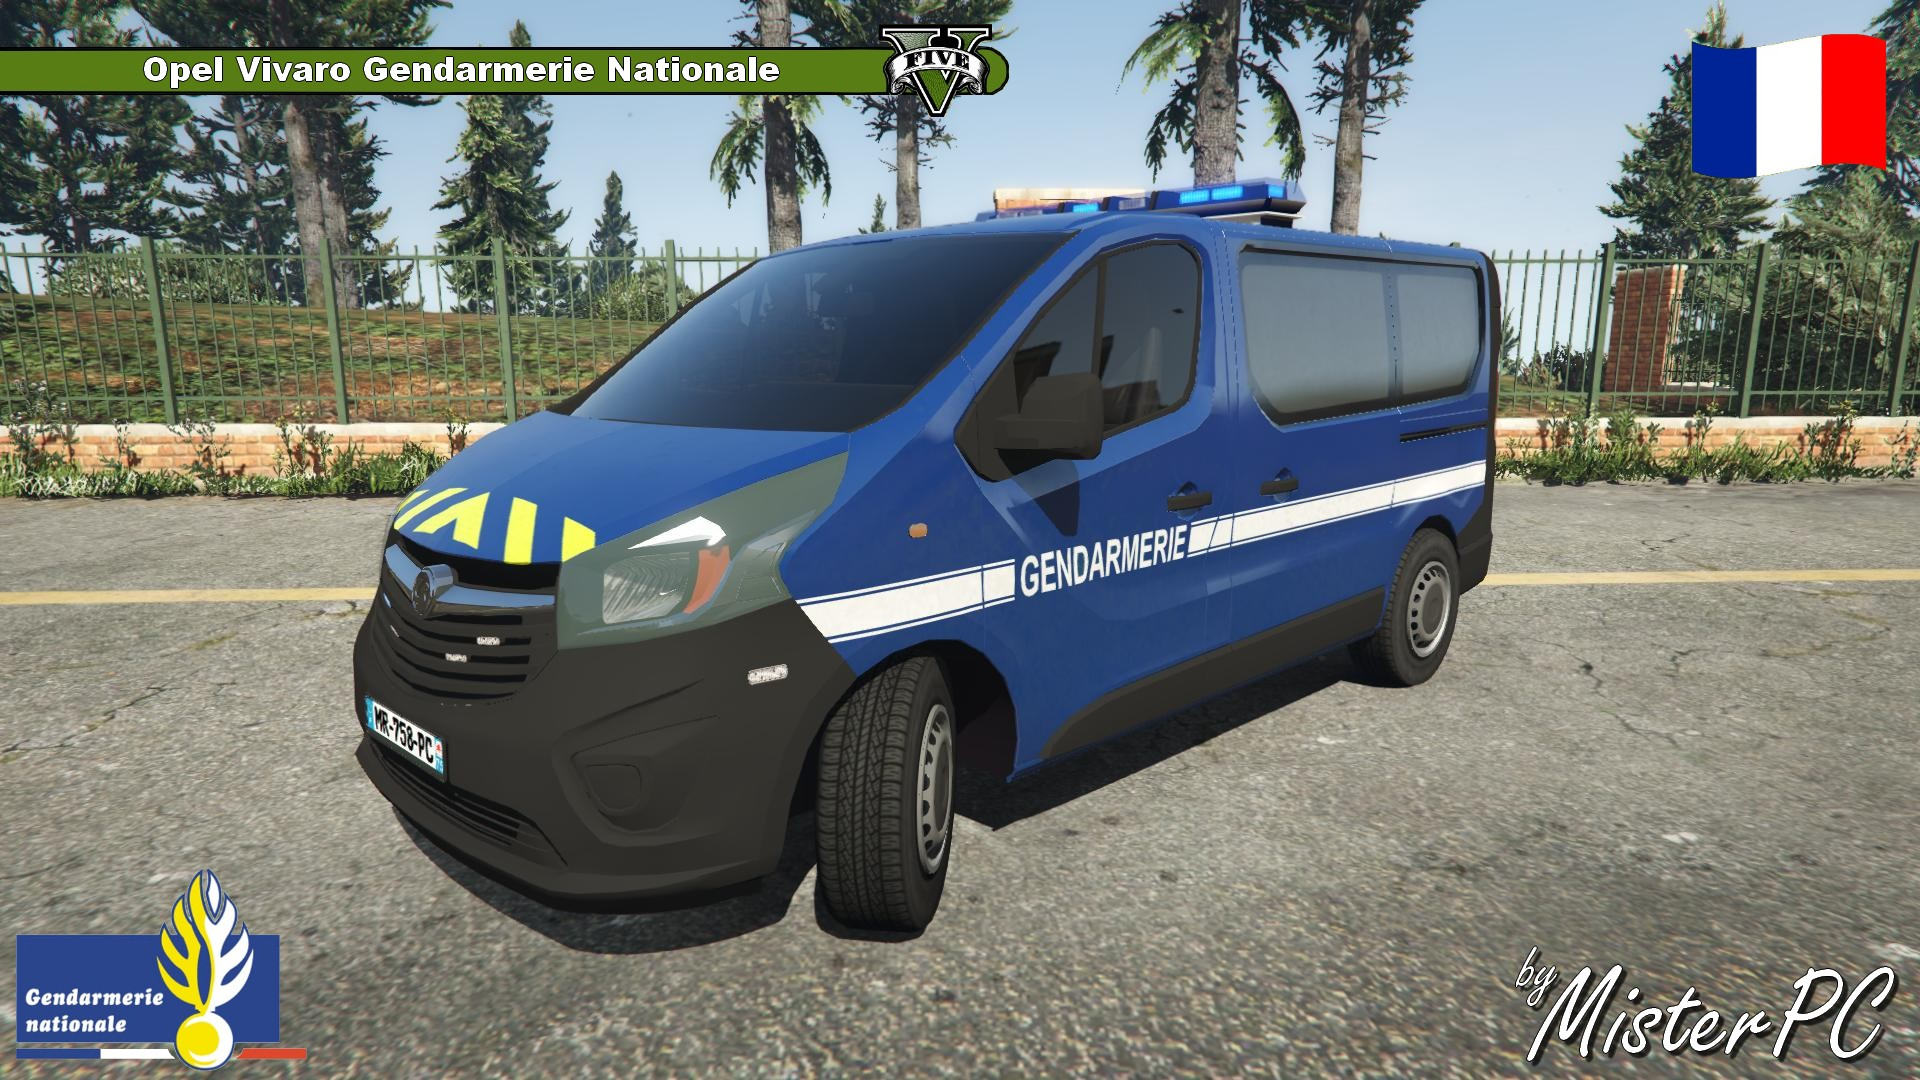 opel vivaro gendarmerie nationale vehicules pour gta v sur gta modding. Black Bedroom Furniture Sets. Home Design Ideas